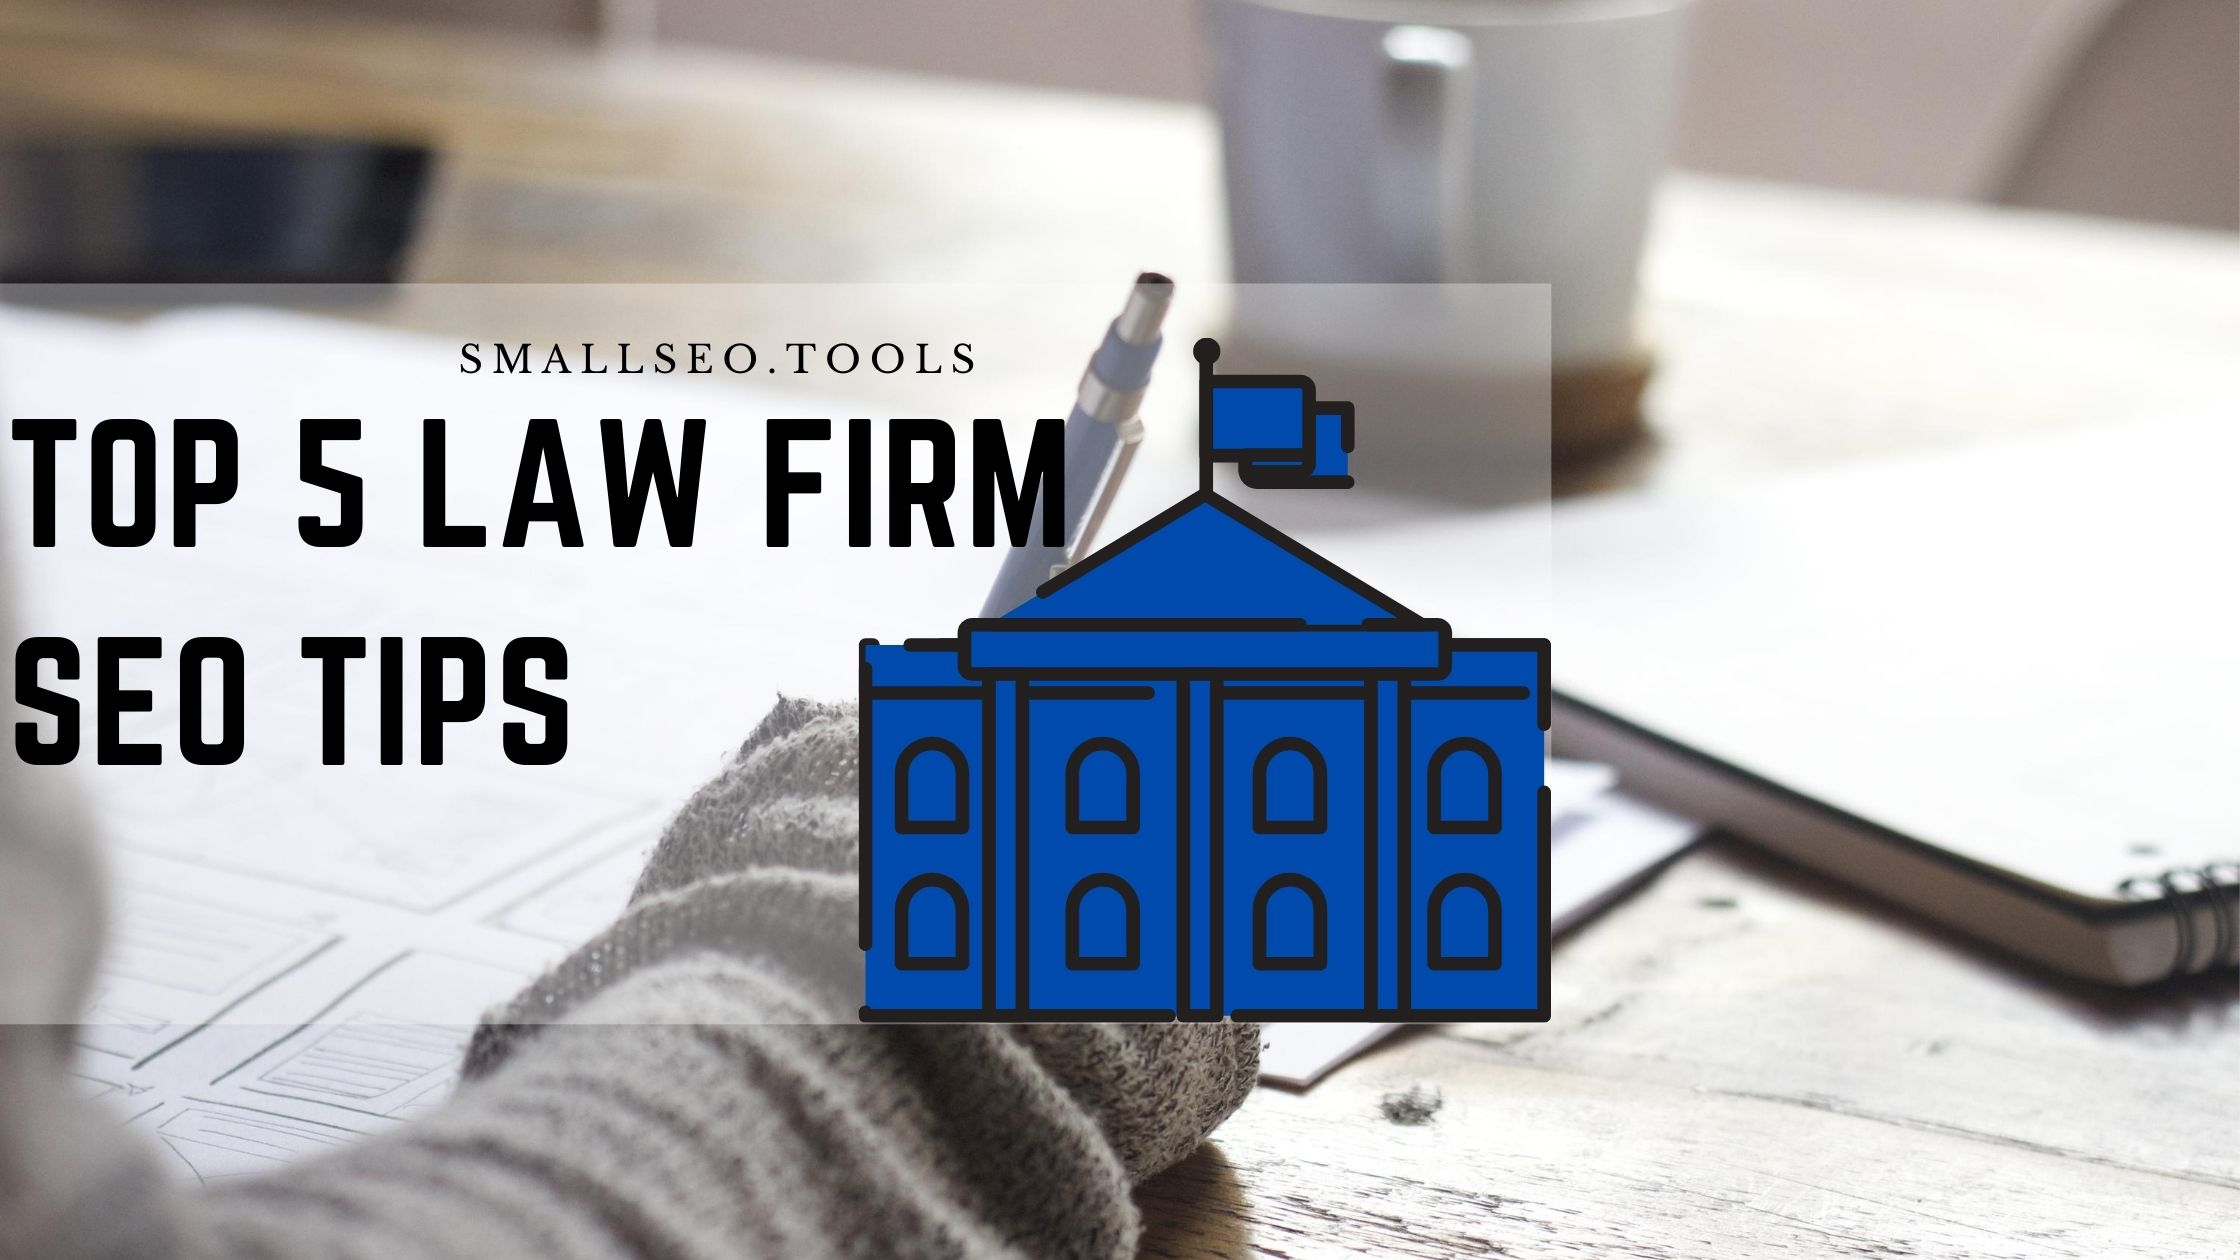 Top 5 law firm  seo tips